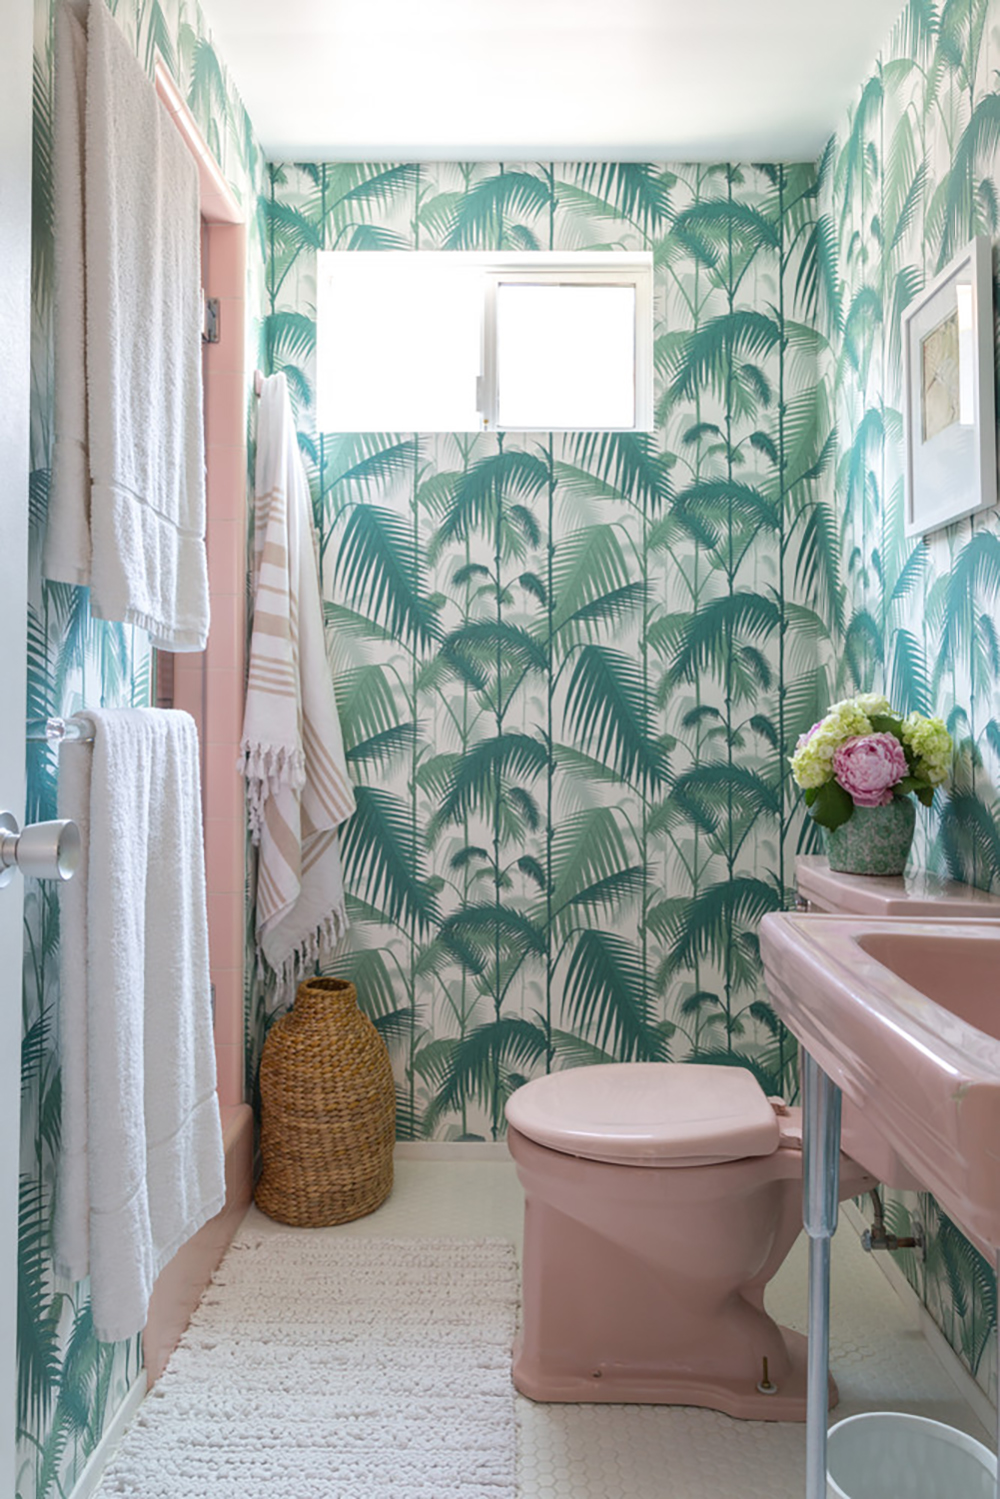 Fanned Fronds on anthropologie - Tropical wallpaper - Transform your home into a tropical paradise | Aliz's Wonderland